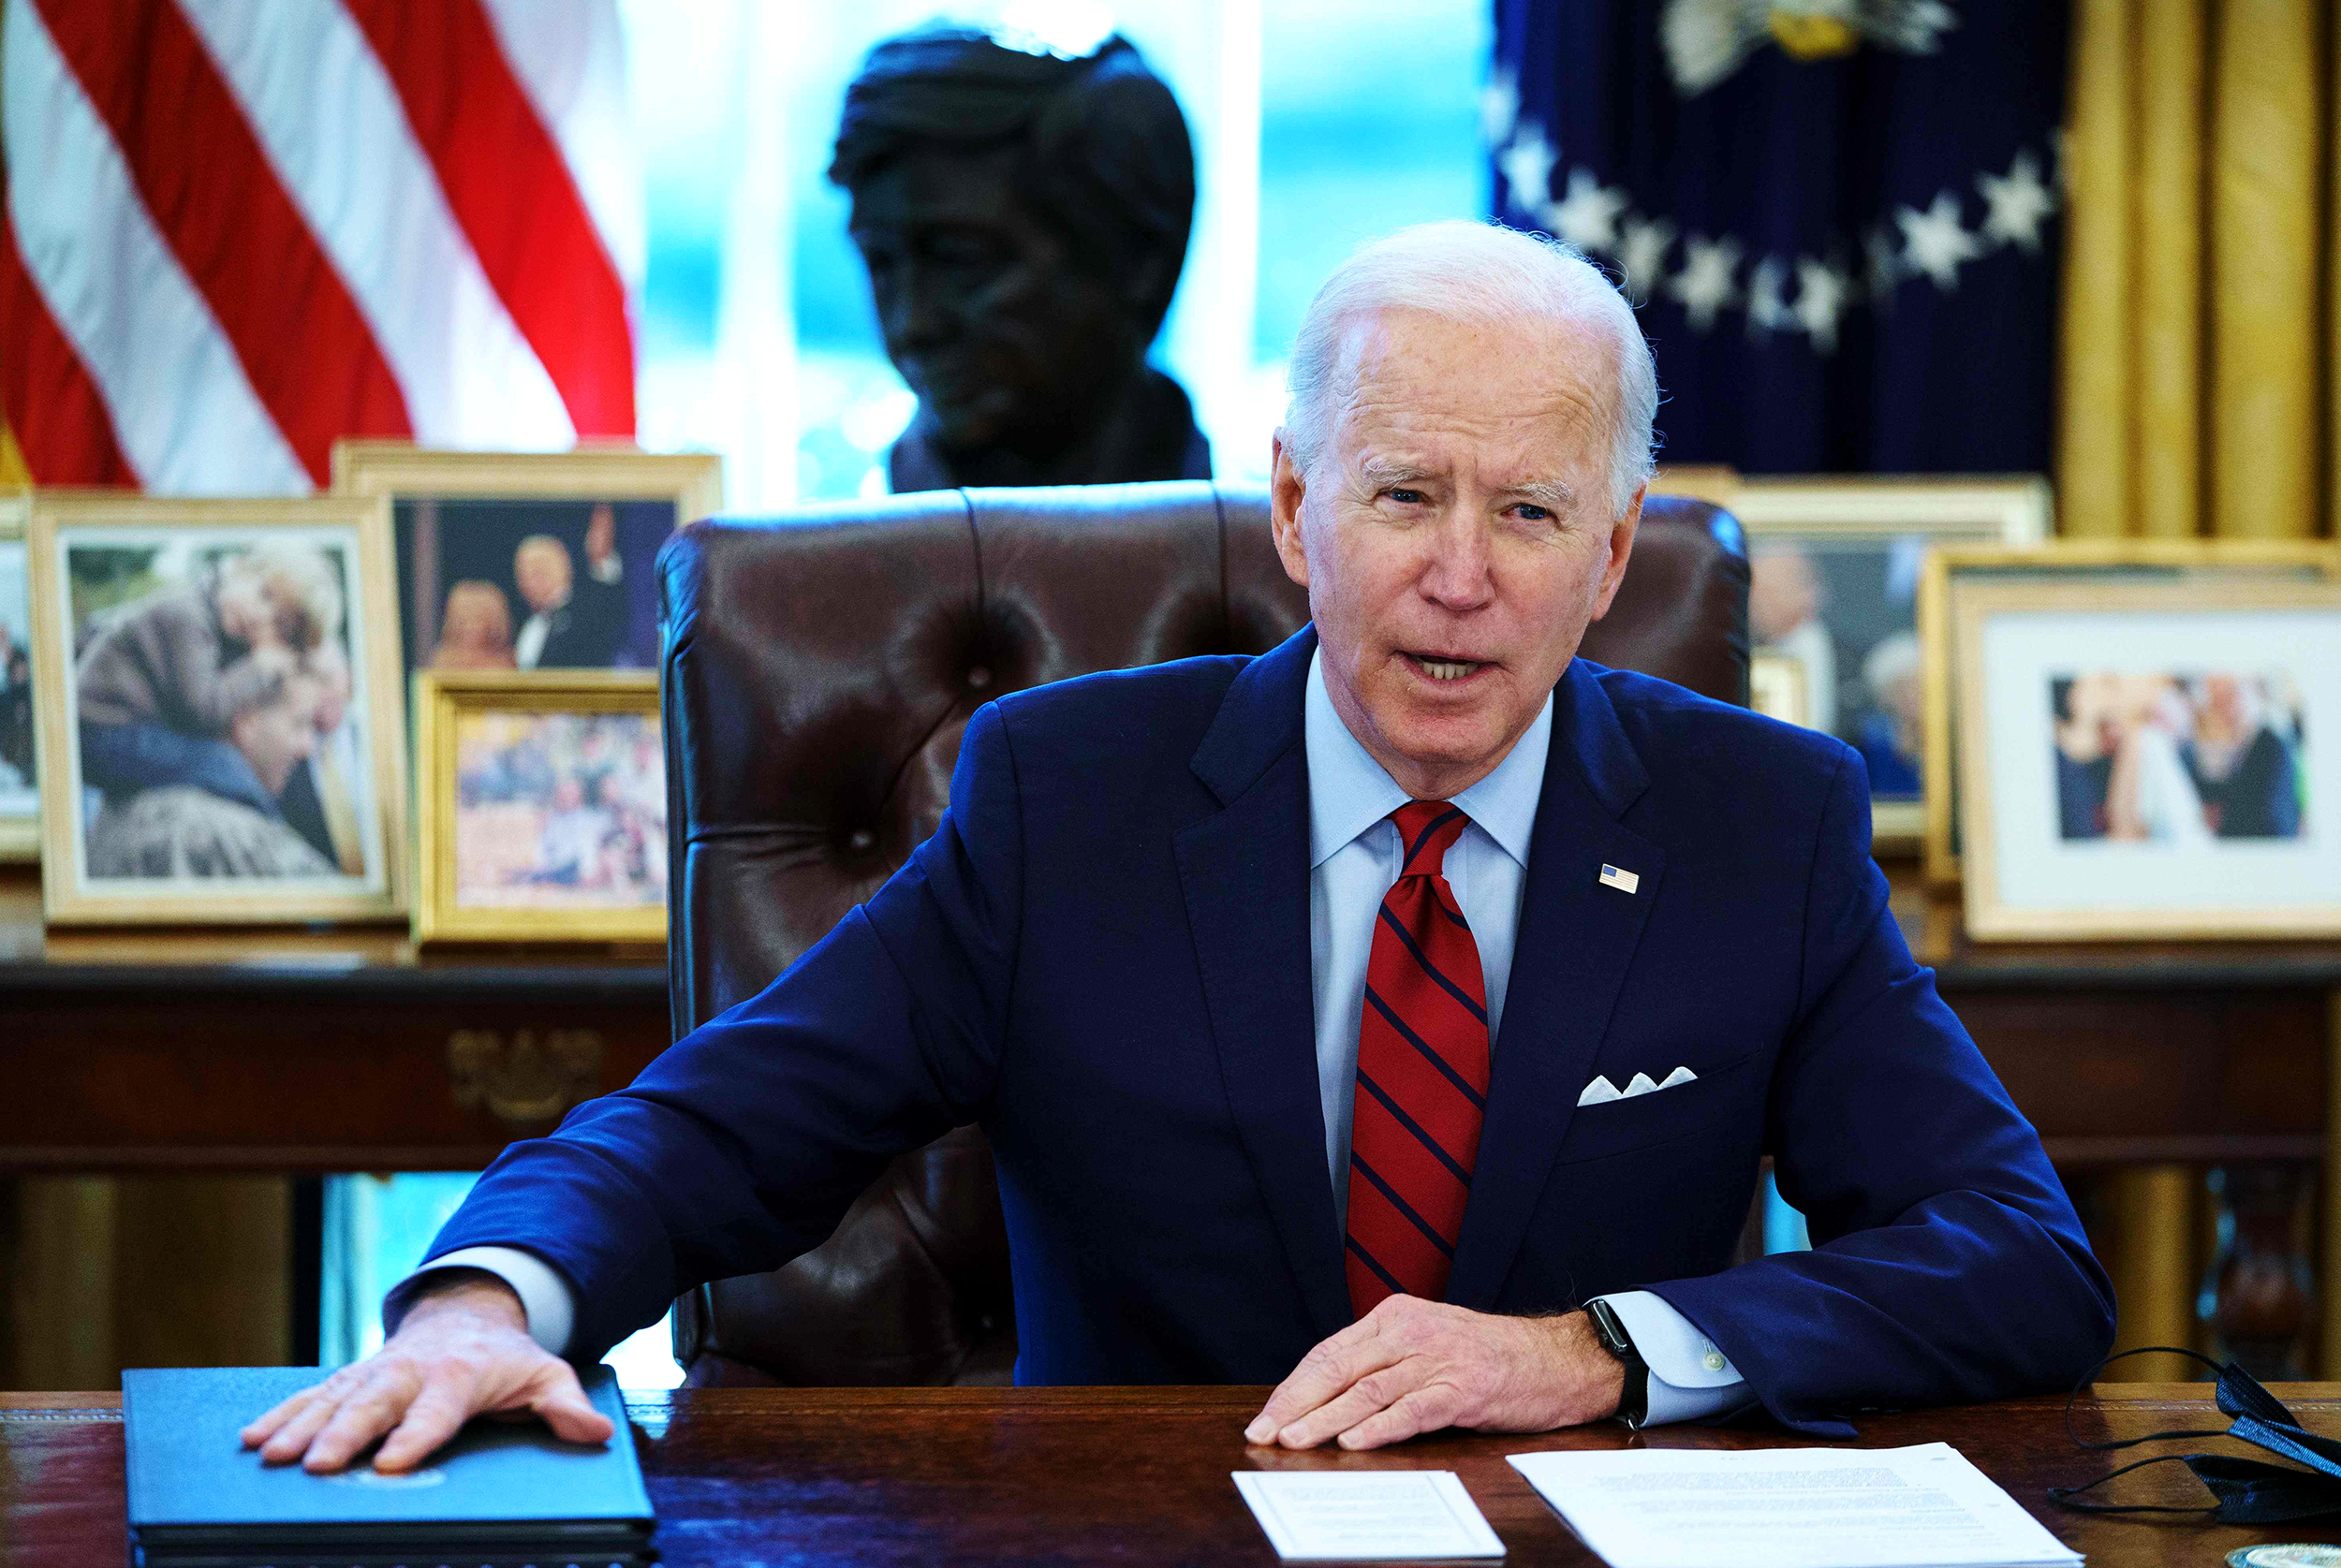 Israel-Hamas Ceasefire: Biden Pledges To Help Rebuild Gaza, Urging A Two-State Solution